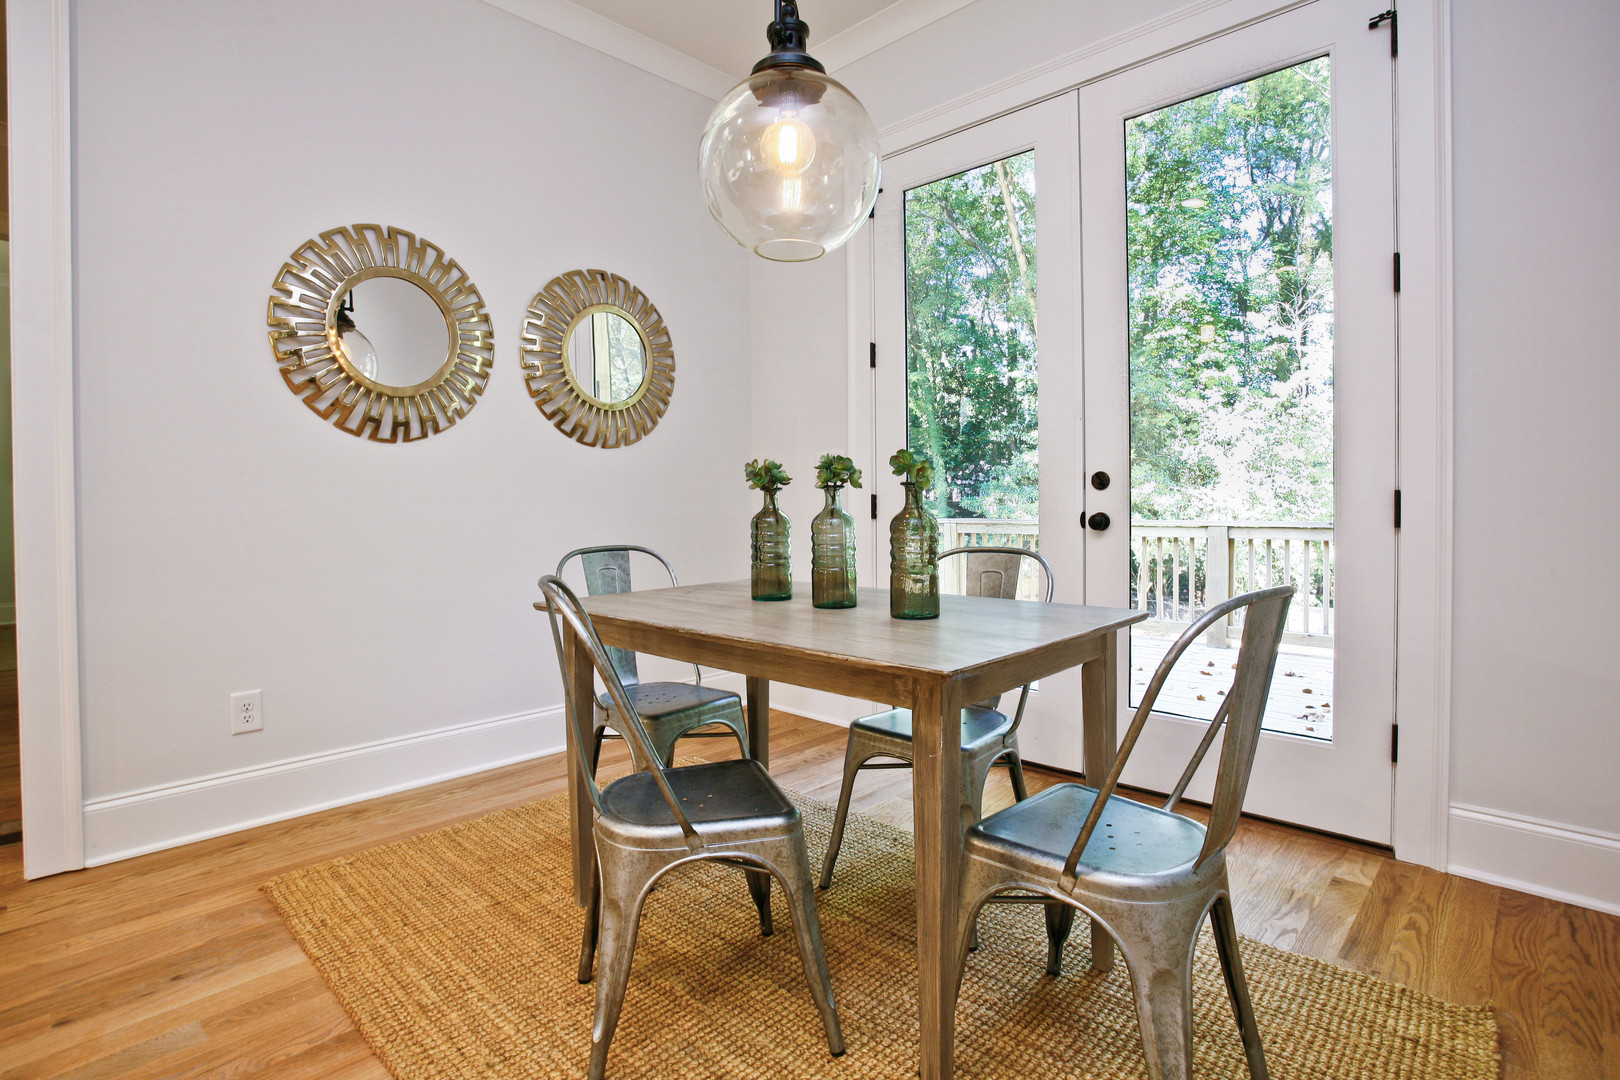 1756 Briarlake - Breakfast Area